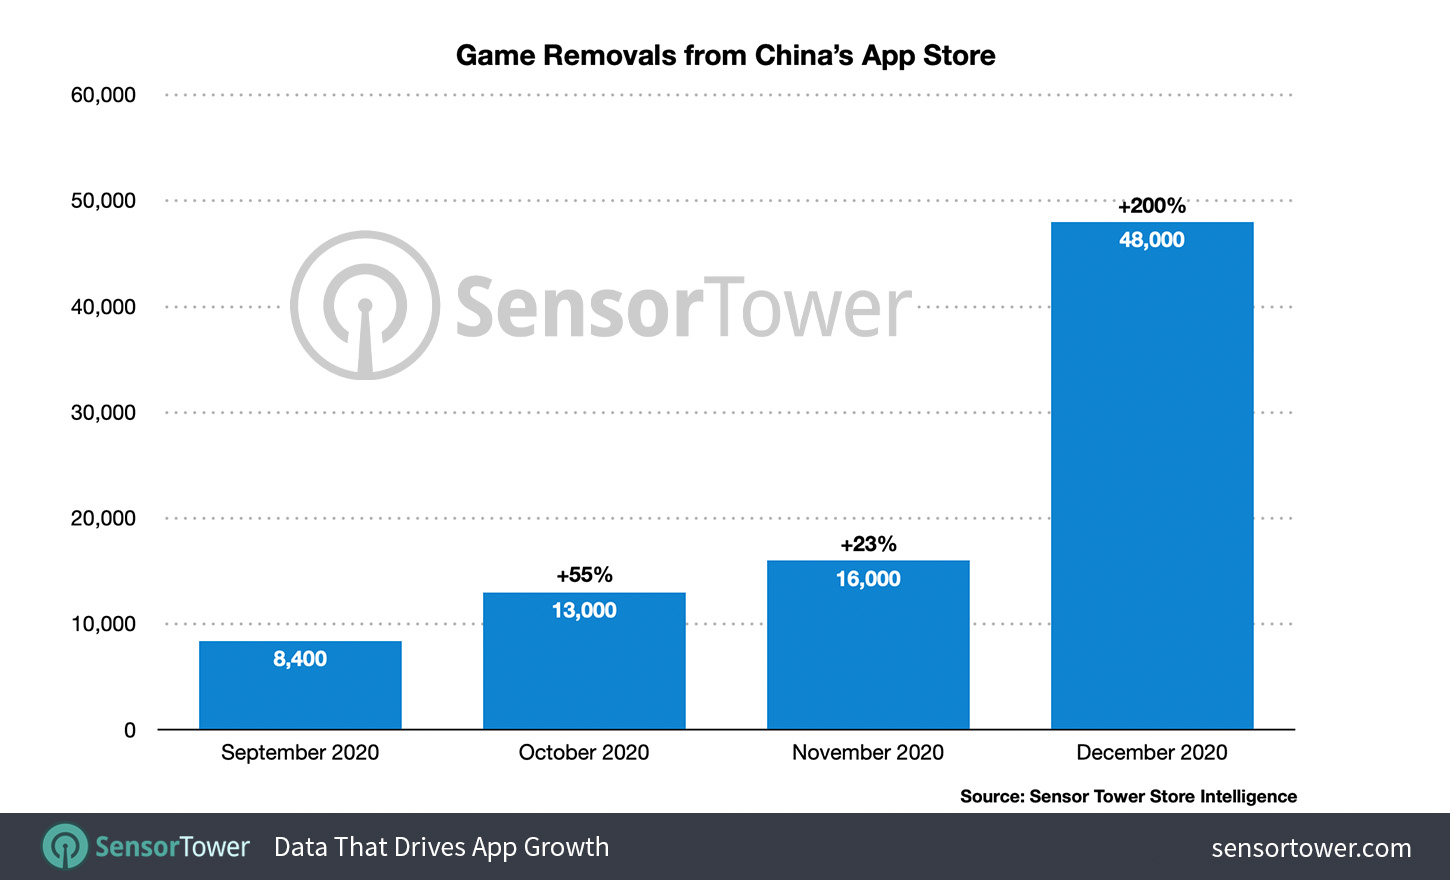 China App Store Game Removals